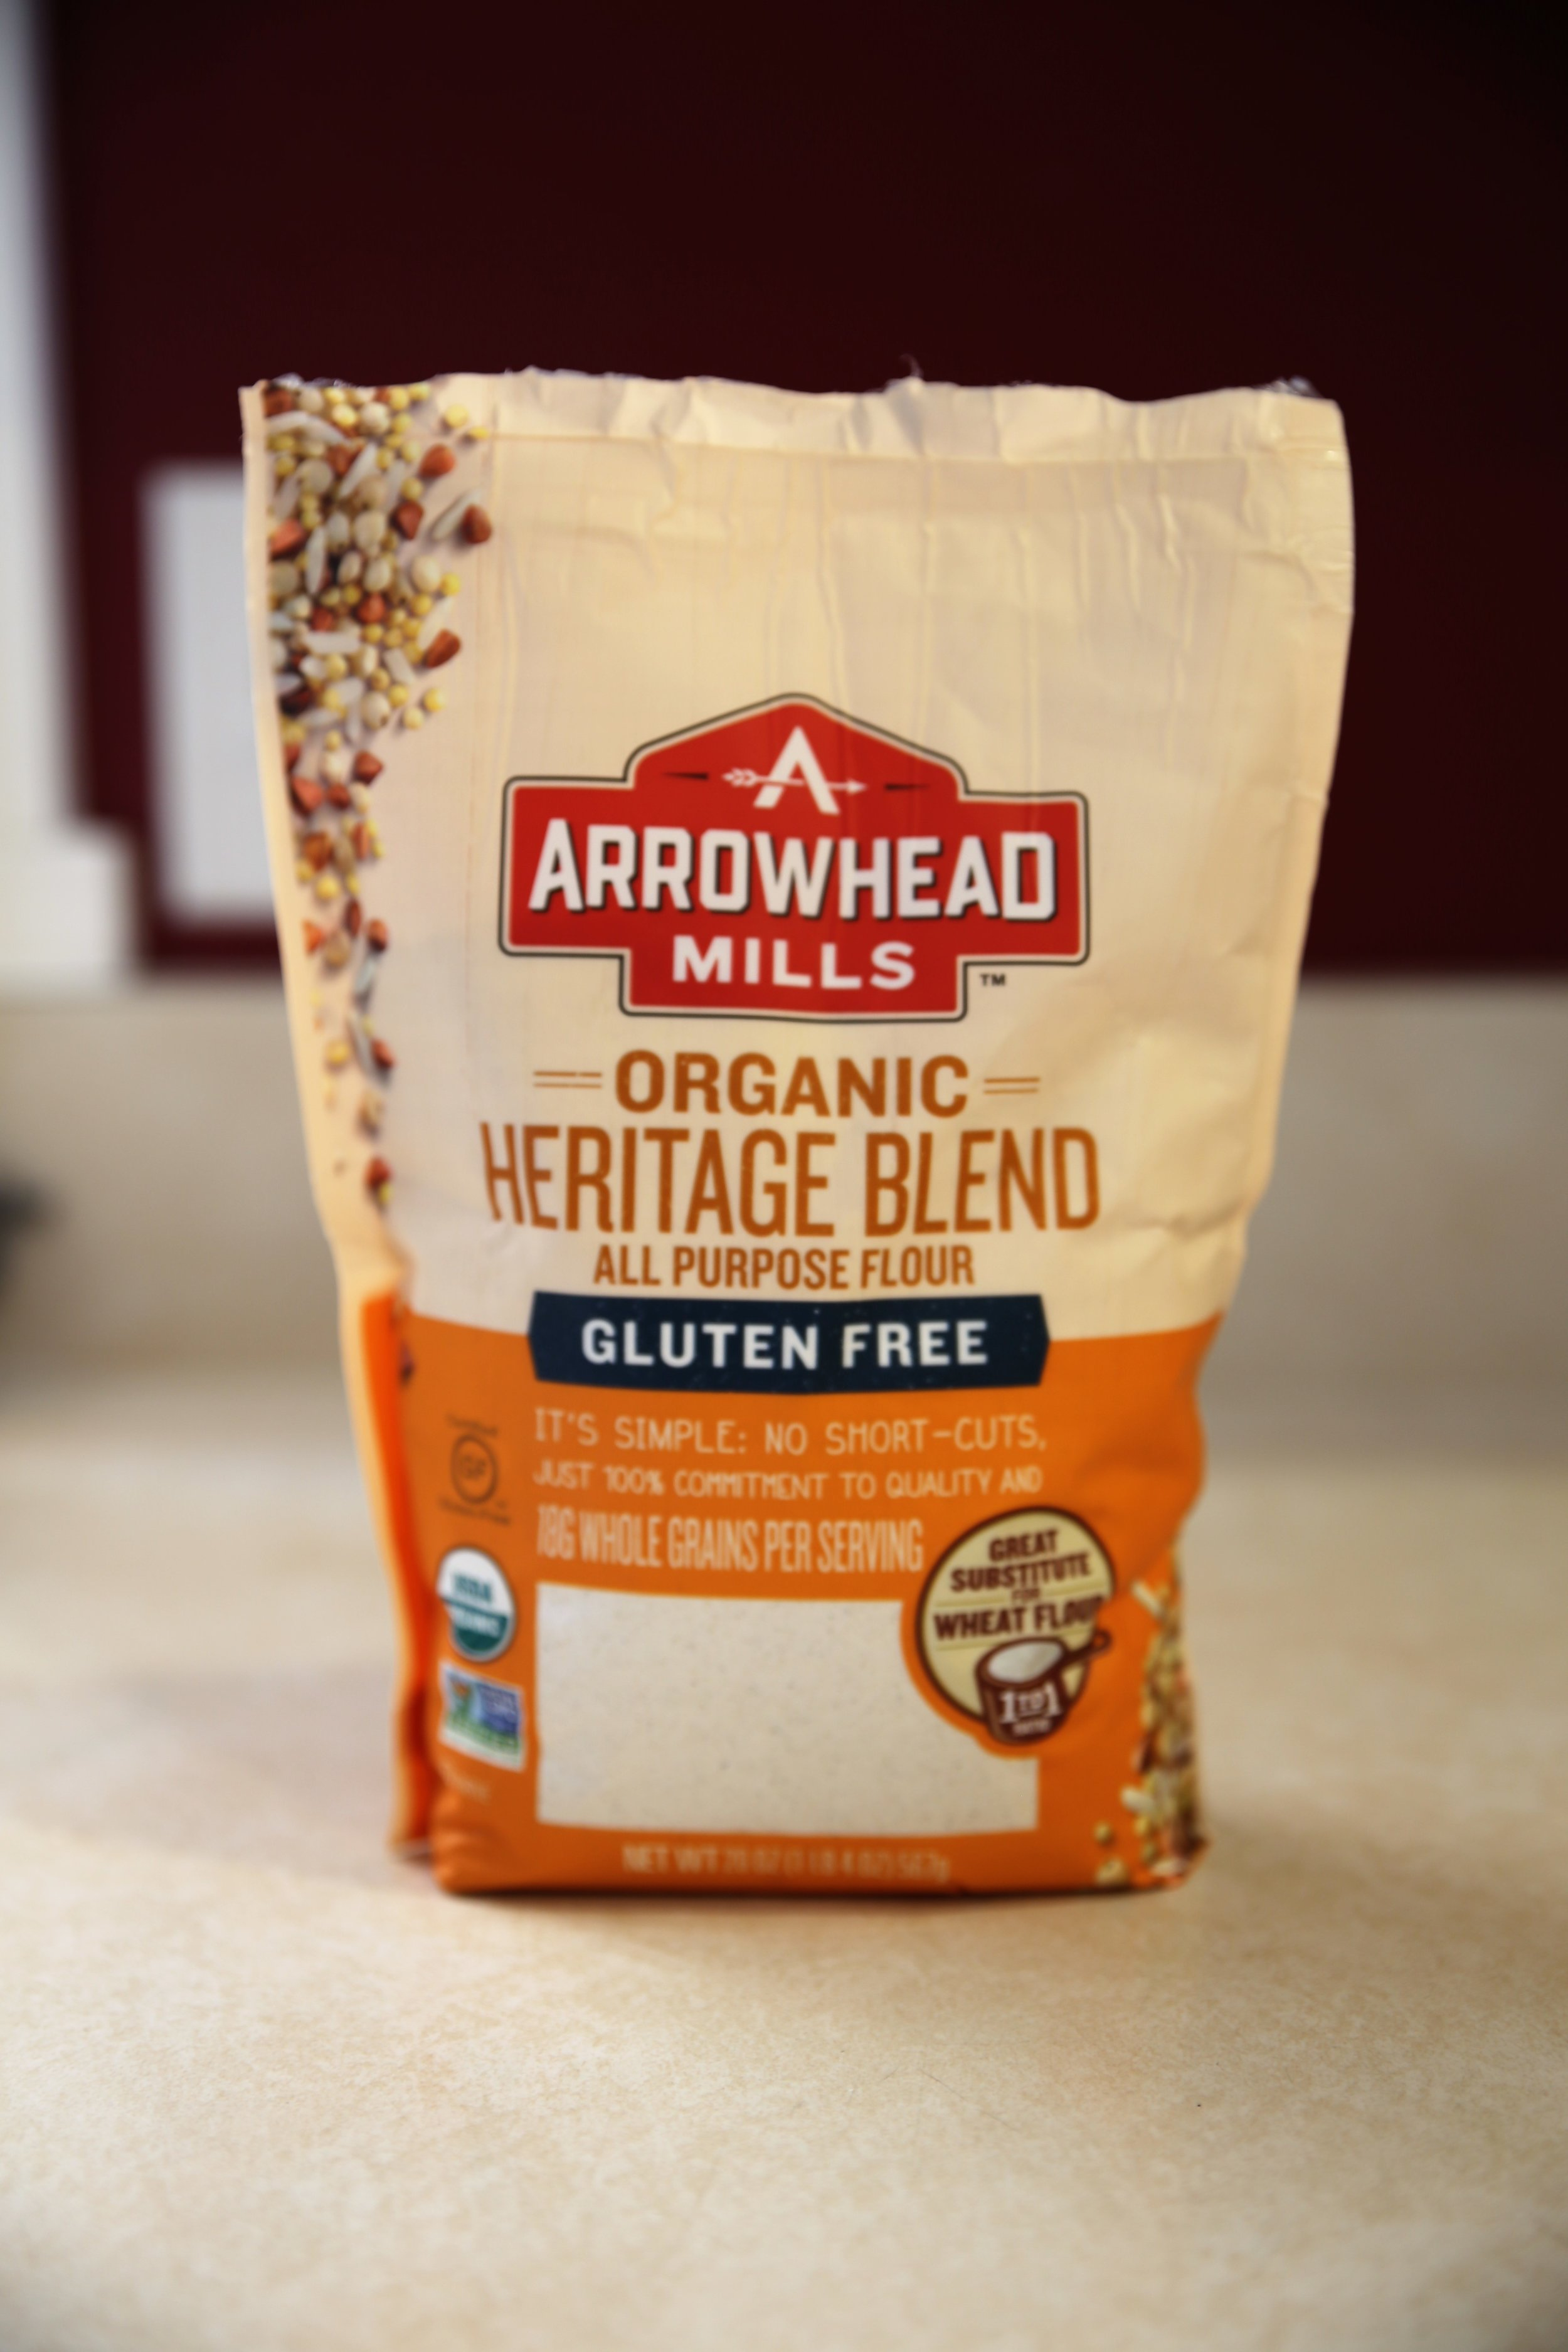 Love that this is a 1:1gluten free flour mix - Many 1:1 GF options taste very rice-y but this one definitely is closer to more of the